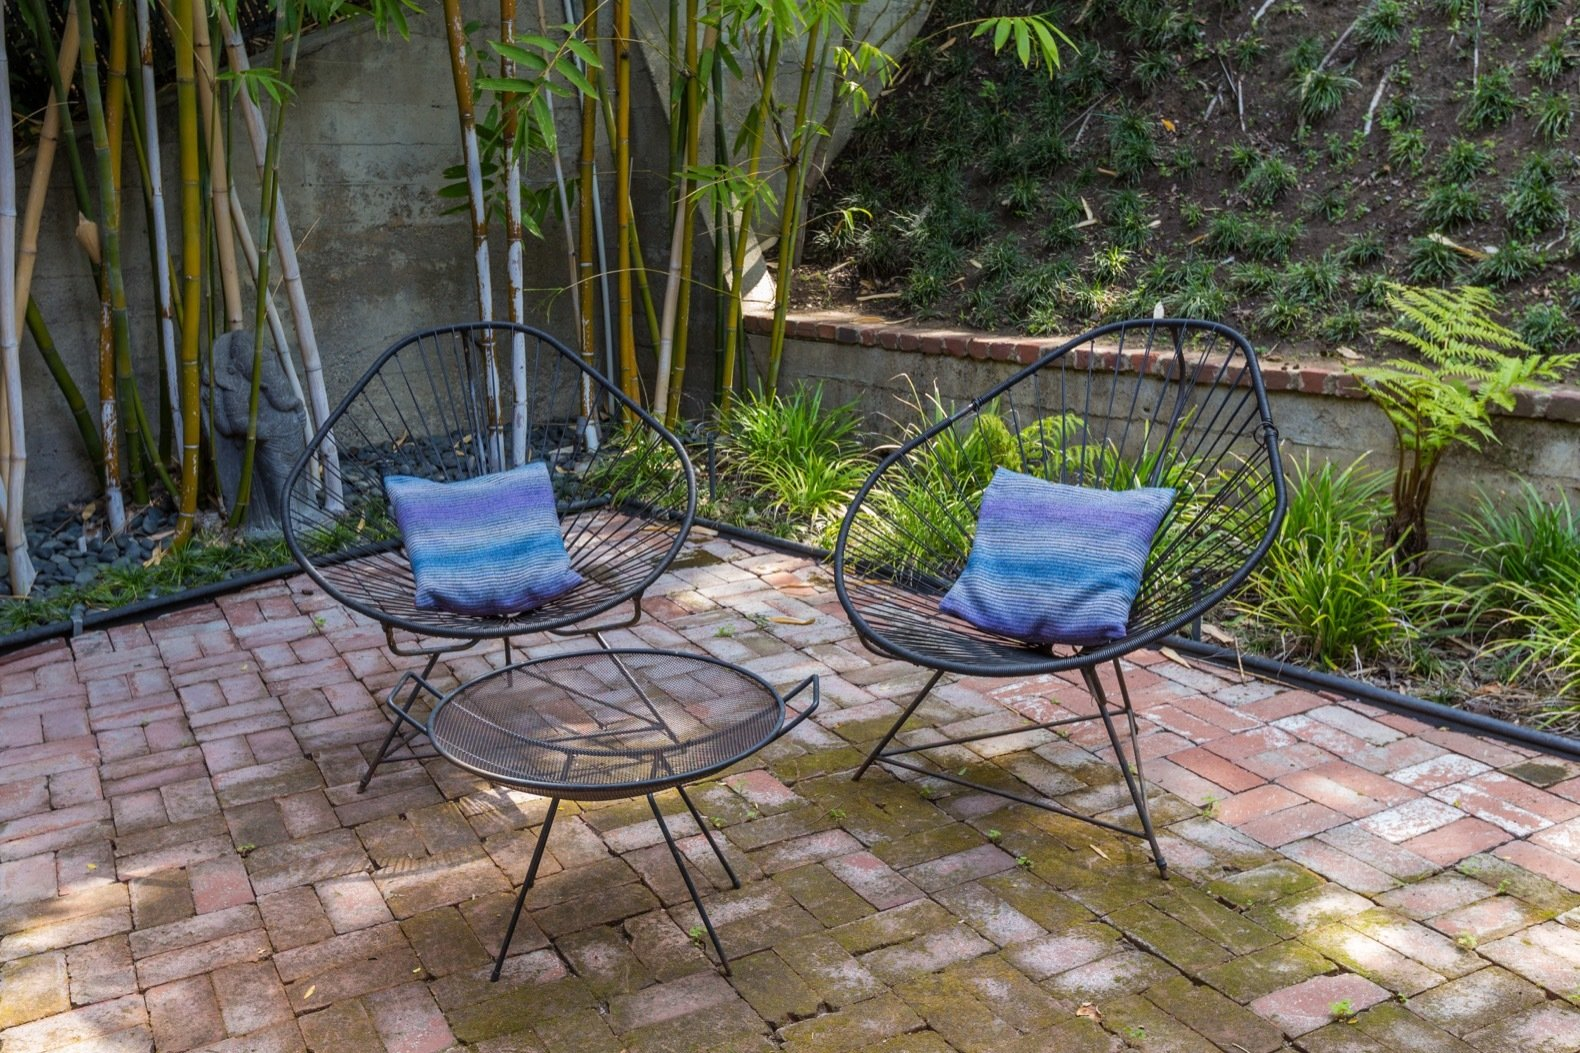 Outdoor, Small Patio, Porch, Deck, Grass, Pavers Patio, Porch, Deck, and Back Yard A bamboo grove provides privacy to the brick-paved patio in the backyard.    Photo 12 of 15 in Calling All Richard Neutra Fans—His Bonnet House in L.A. Hits the Market at $1.8M